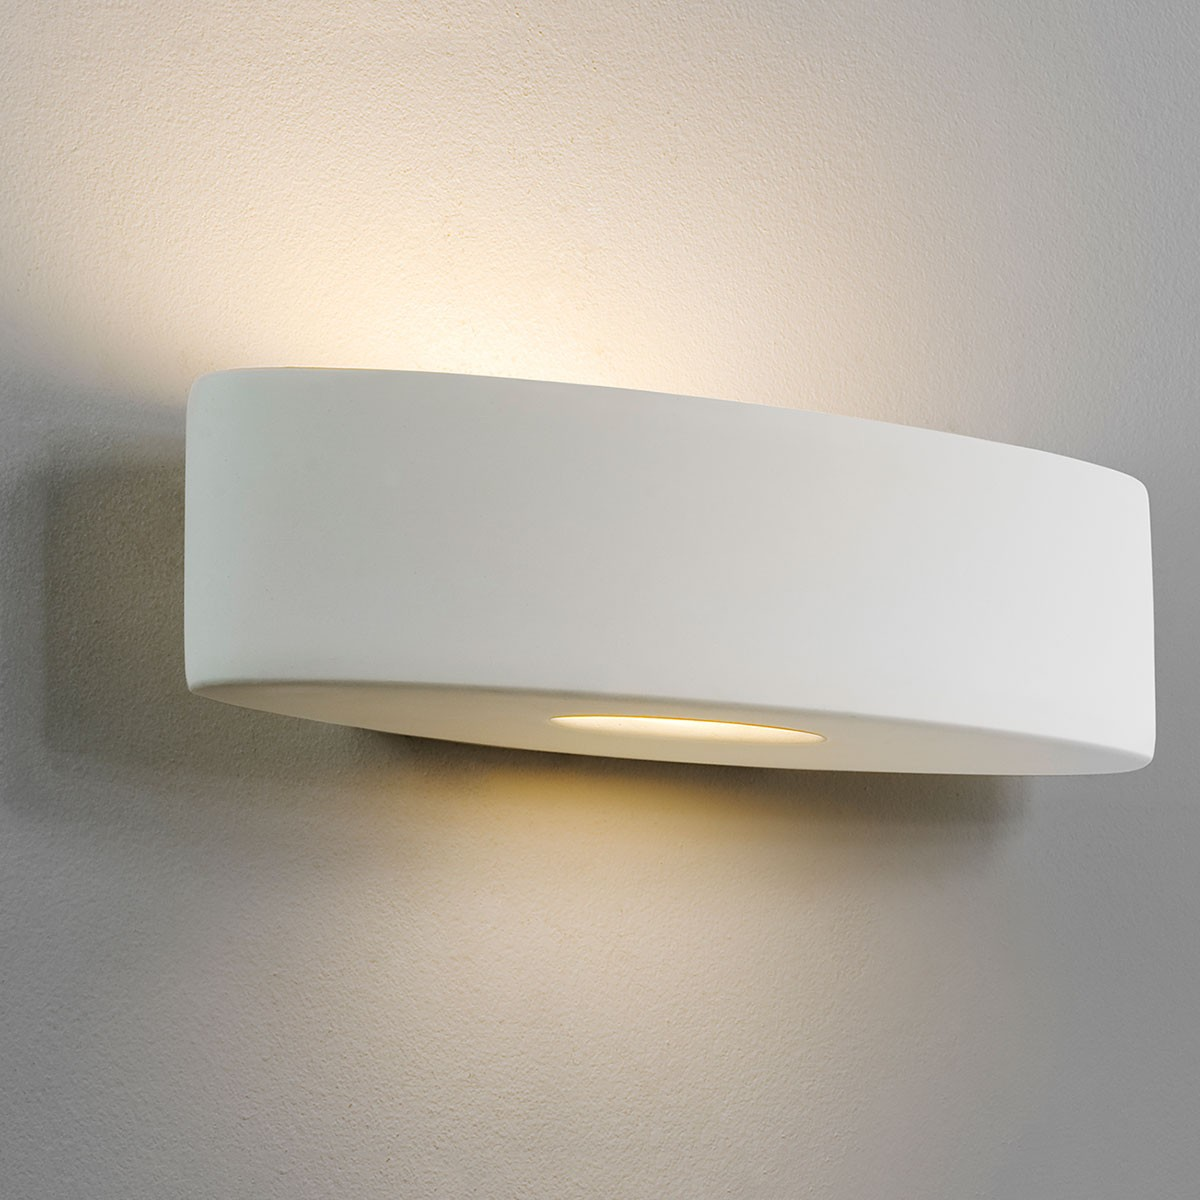 Astro Ceramic Wall Lights : Astro Ovaro Ceramic Wall Light at UK Electrical Supplies.